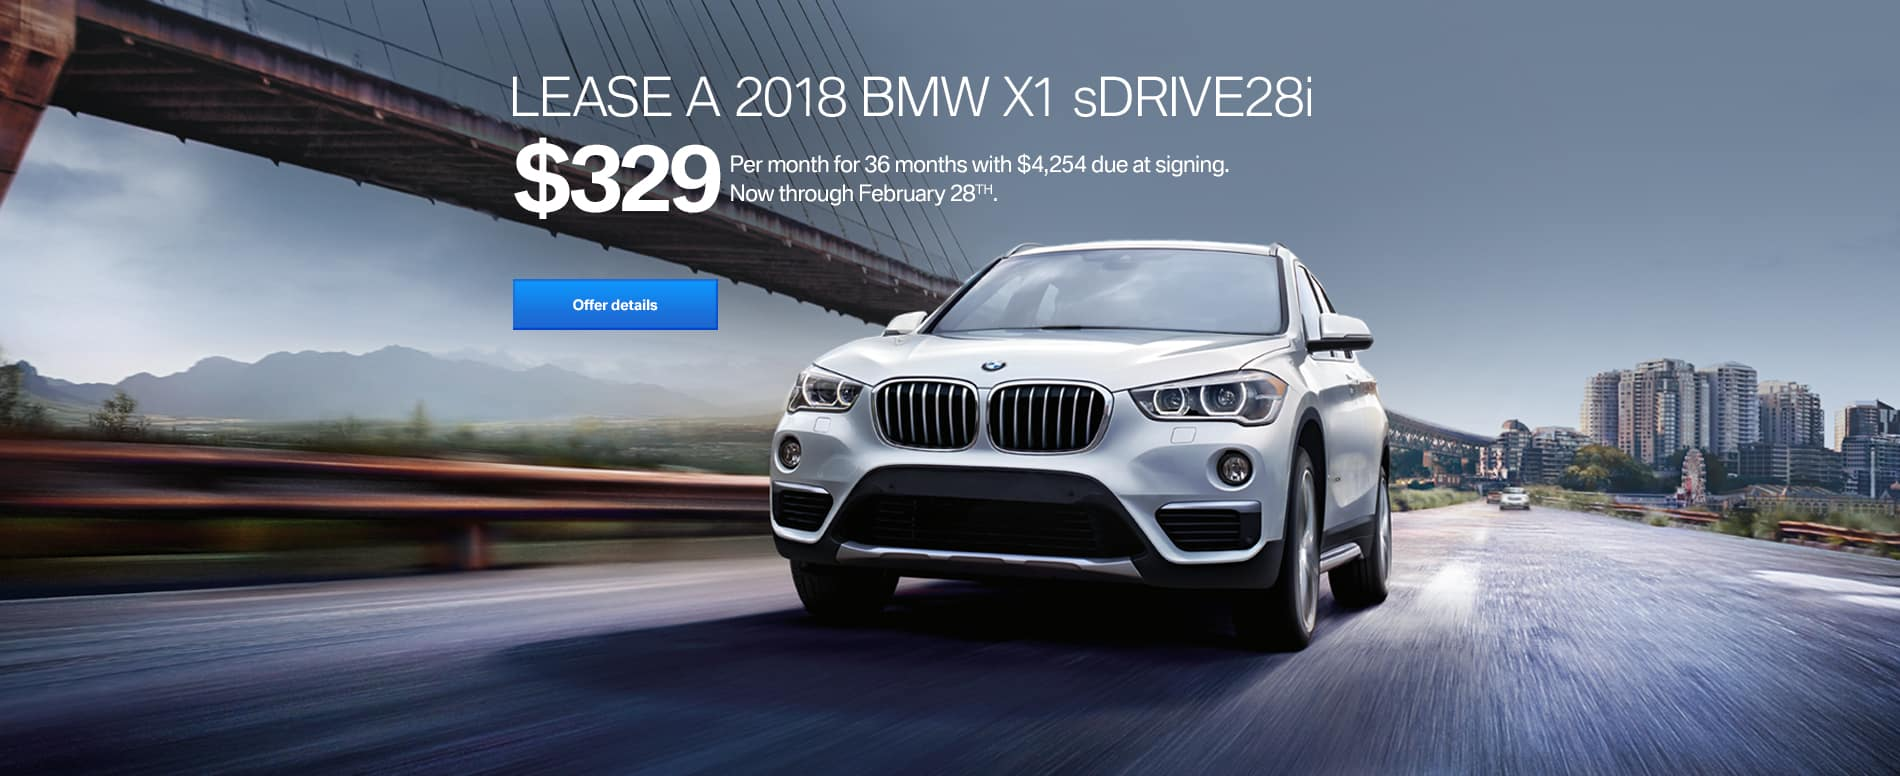 2018 BMW X1 xDrive28i 329 feb